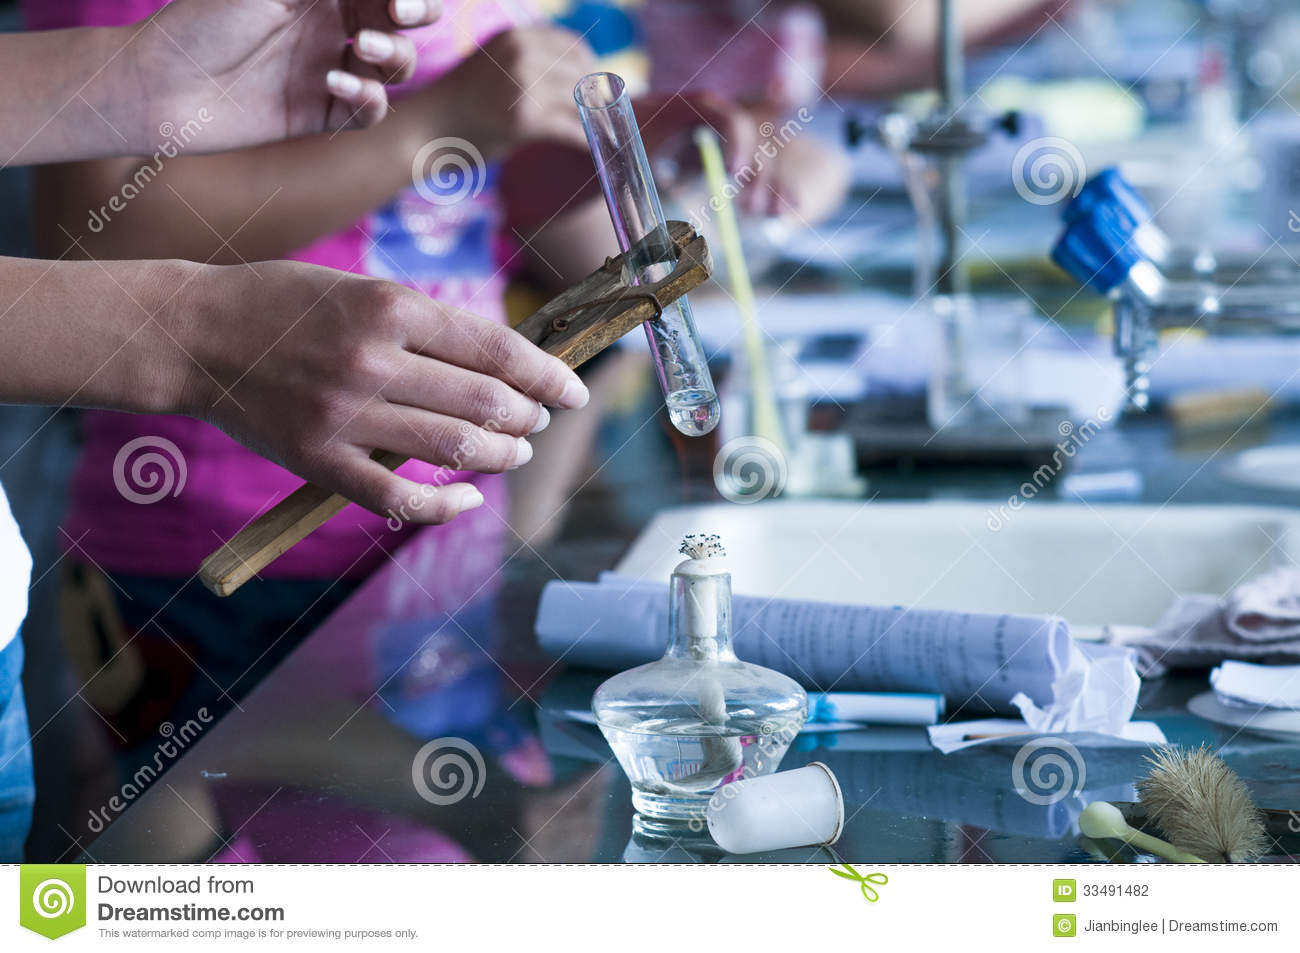 Chemistry research topics for college students